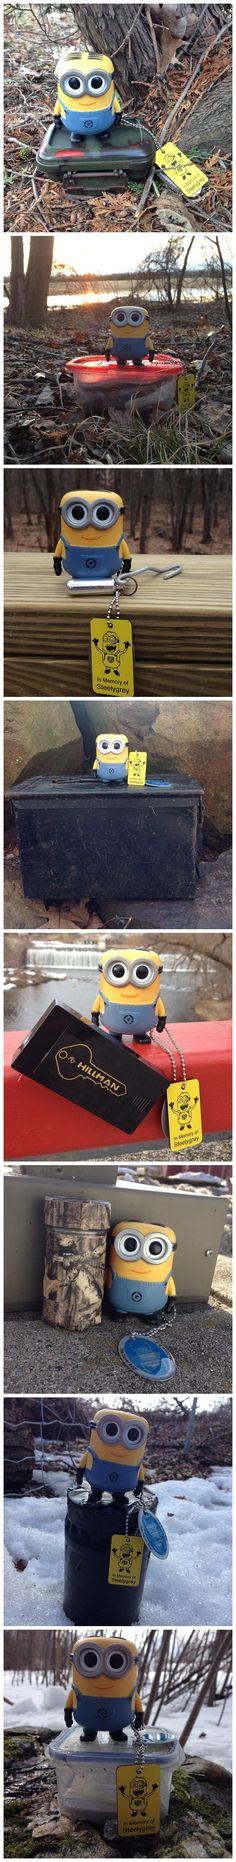 A Minion goes geocaching!  With eyes that size, maybe they're suited for spotting geocaches.  (pics by geominionmom on Instgram stitched together by I.B. Geocaching and pinned to Geocaching Images - pinterest.com/islandbuttons/geocaching-images/)  #IBGCp